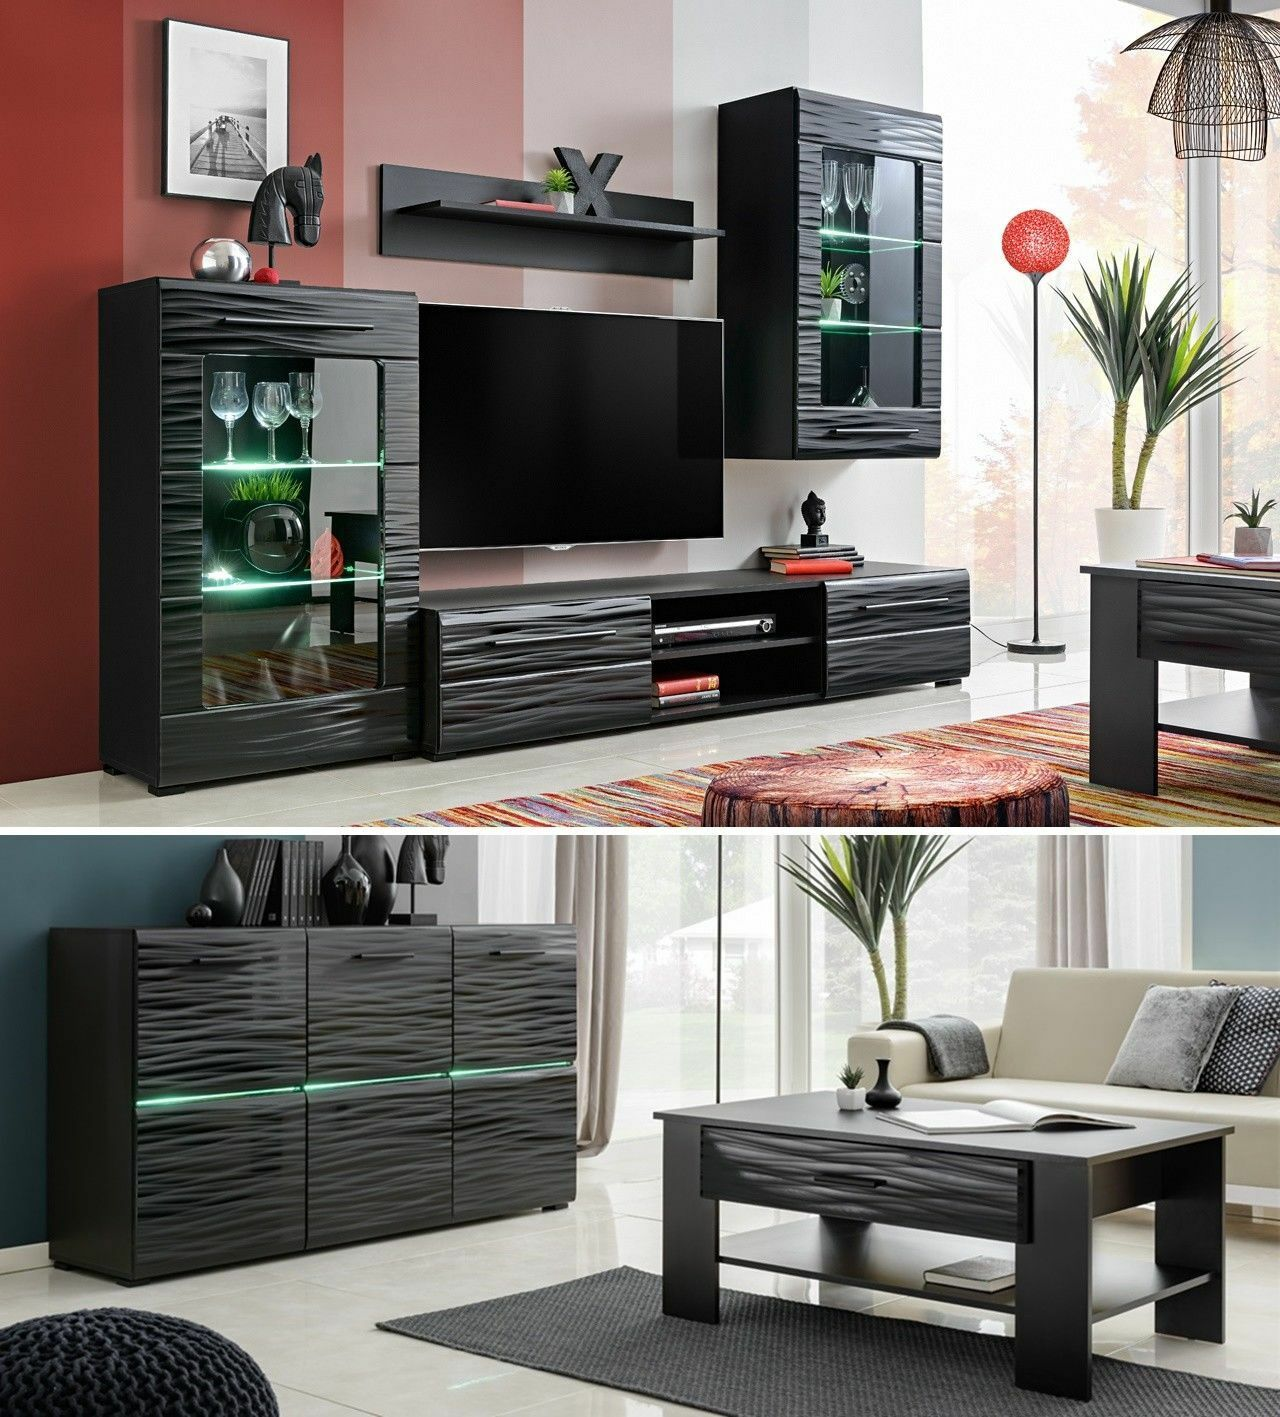 Living Room High Gloss Furniture Display Wall Unit Modern